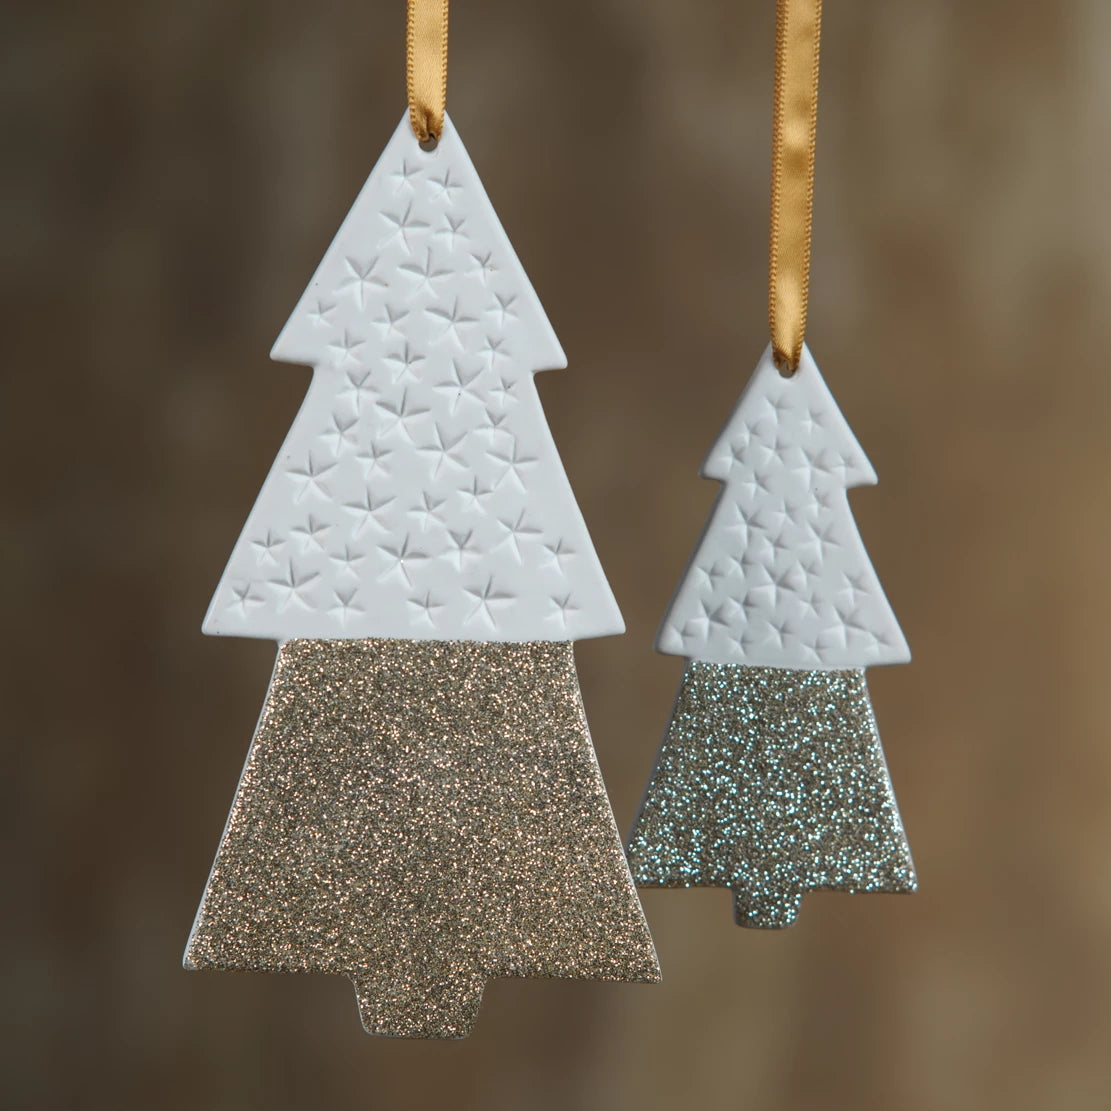 Two-Tone Tree Ornaments - Gold - CARLYLE AVENUE